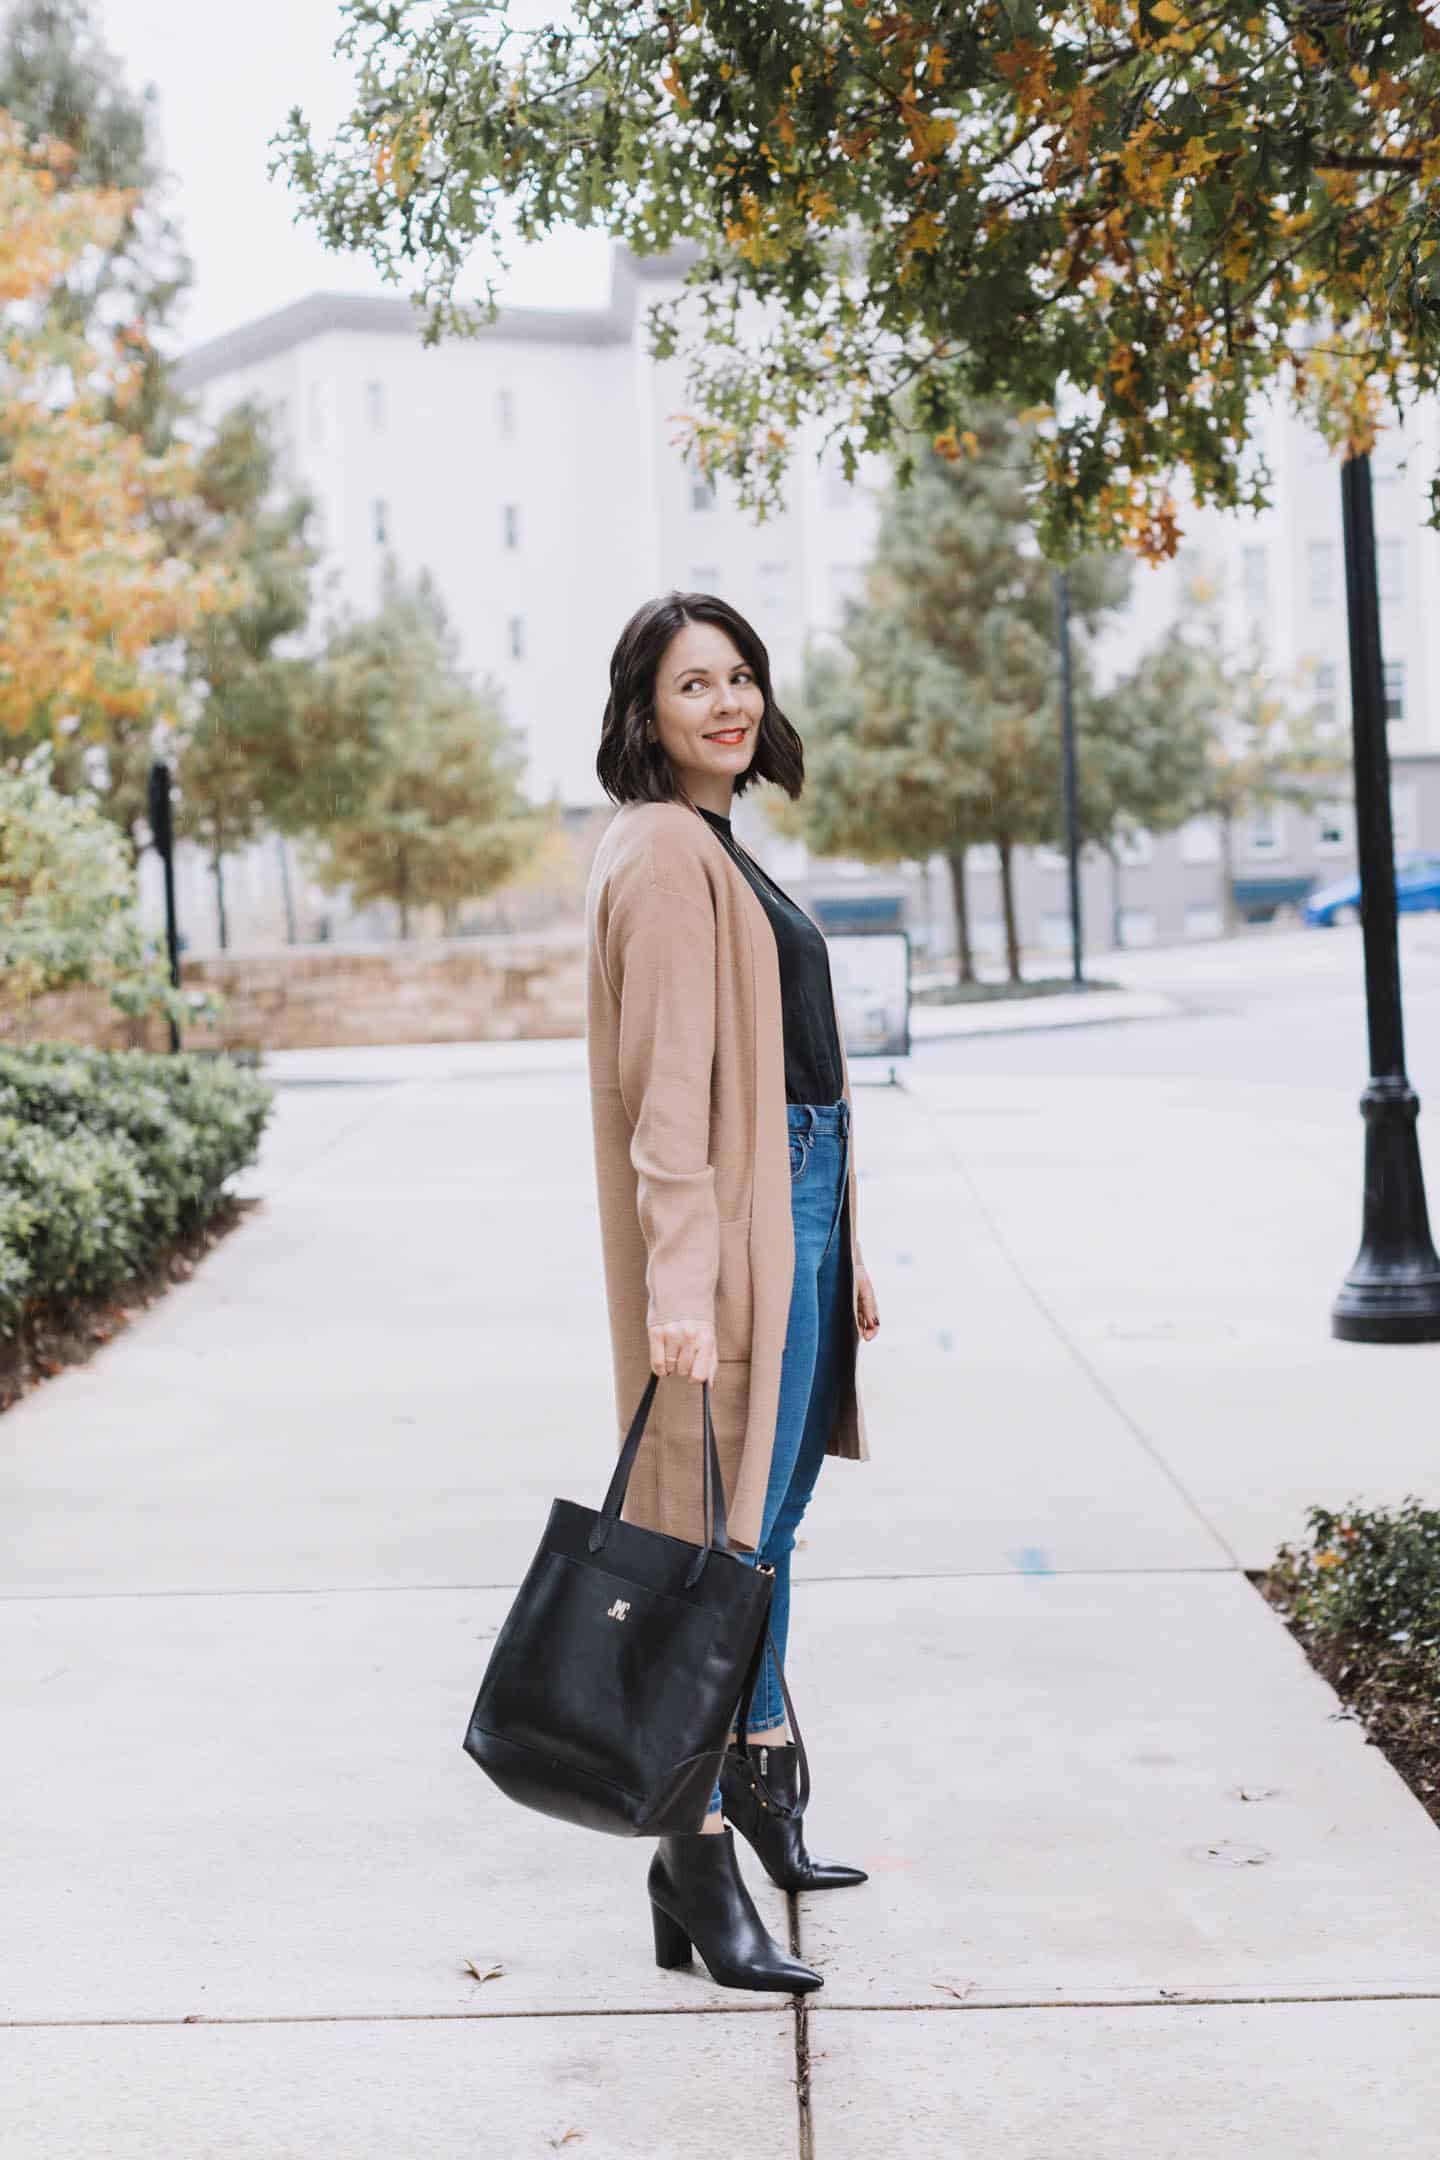 classic outfit with camel cardigan and jeans